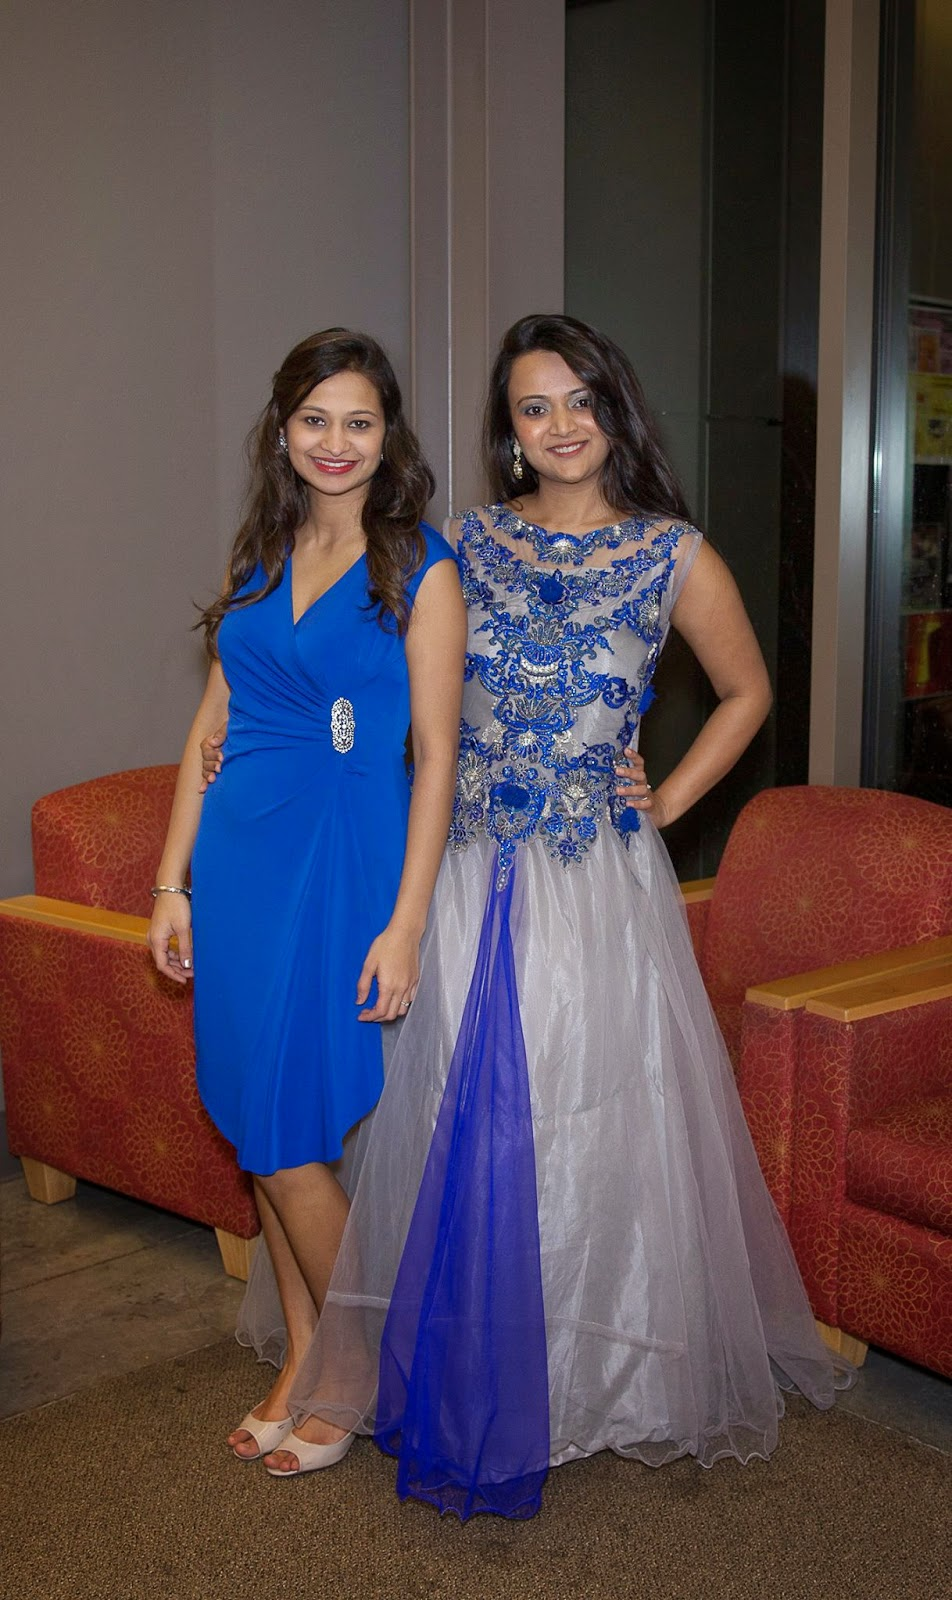 cocktail dresses, Indian girl wearing a beautiful gown, grey and blue cocktail dress, seattle fashion stores, Indo Western gowns